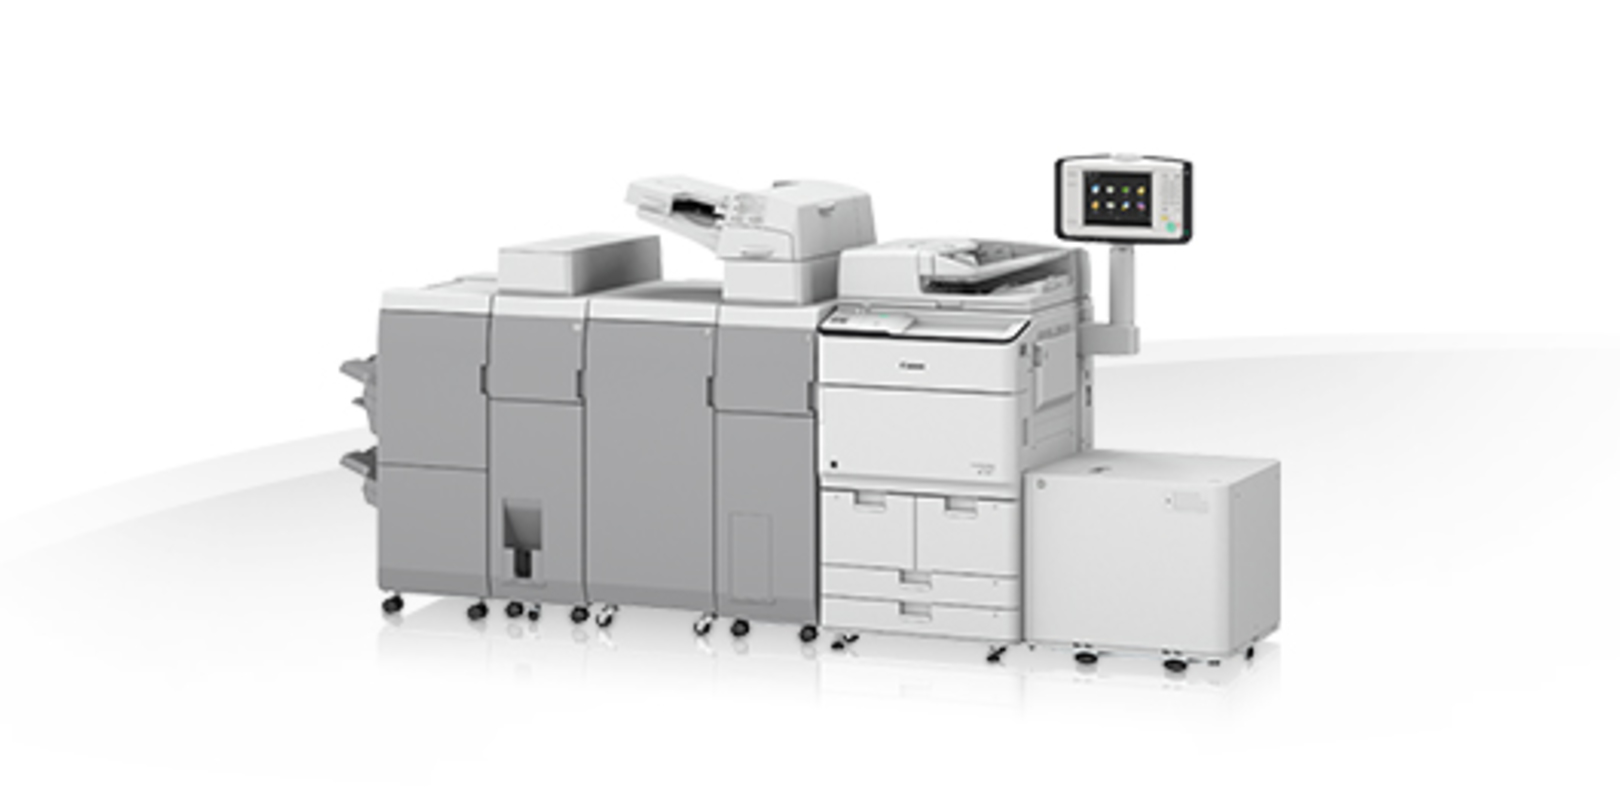 Canon imageRUNNER ADVANCE DX 8795 printer available ot lease or purchase.